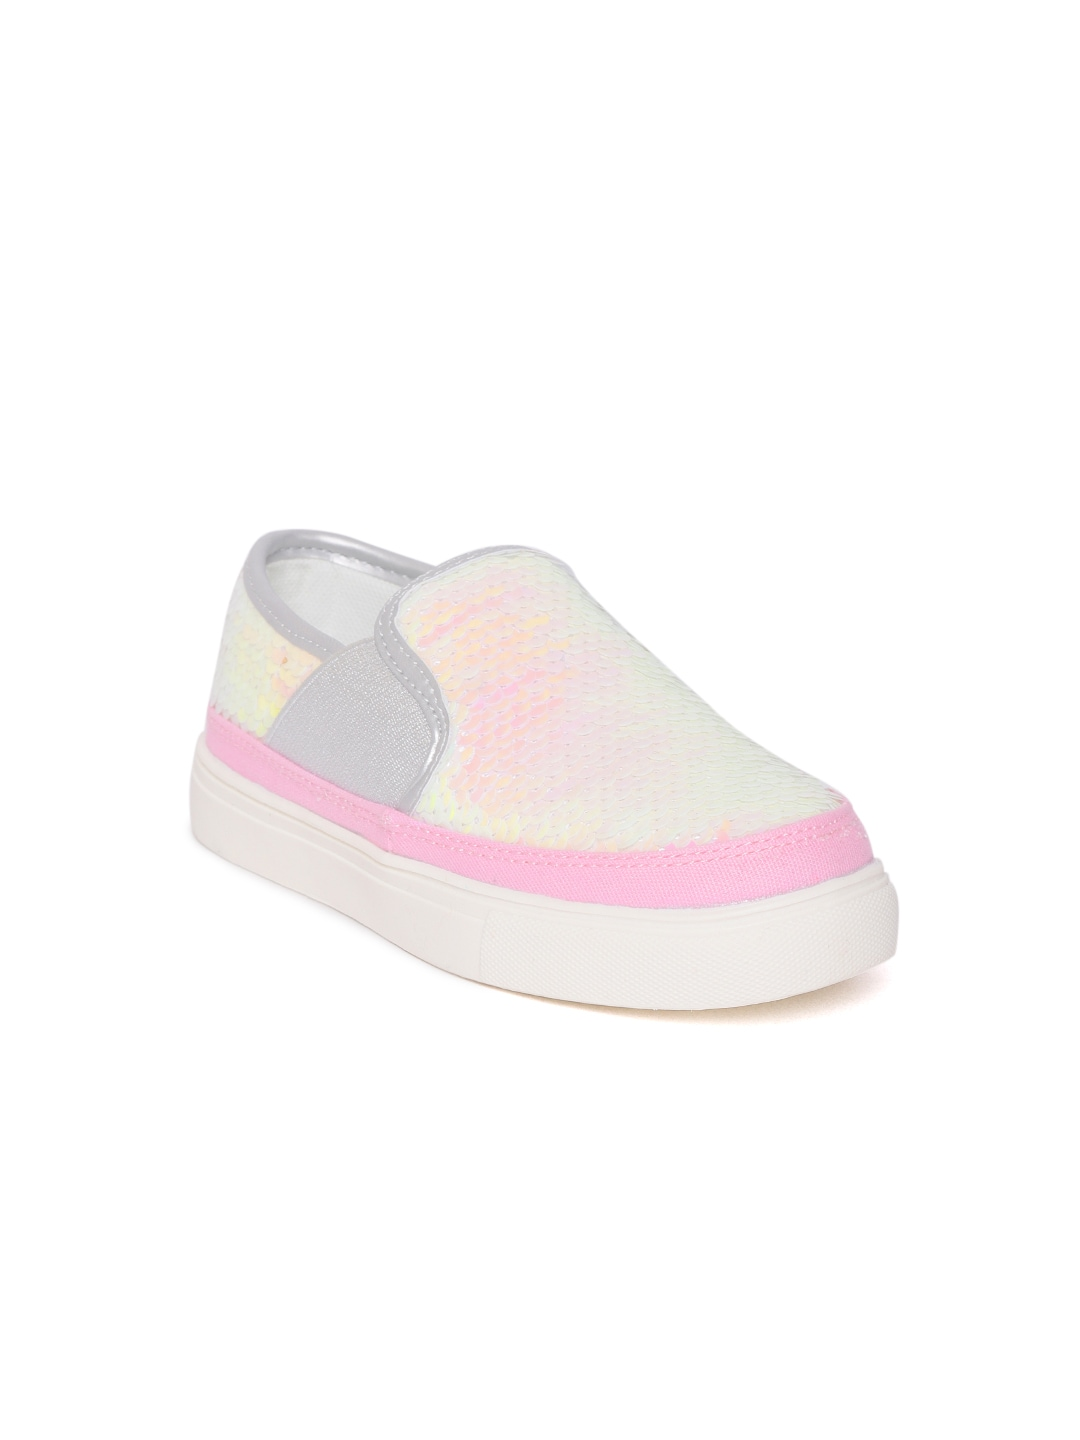 a78ce09cfa United Colors of Benetton Girls Pink Sequinned Slip-On Sneakers